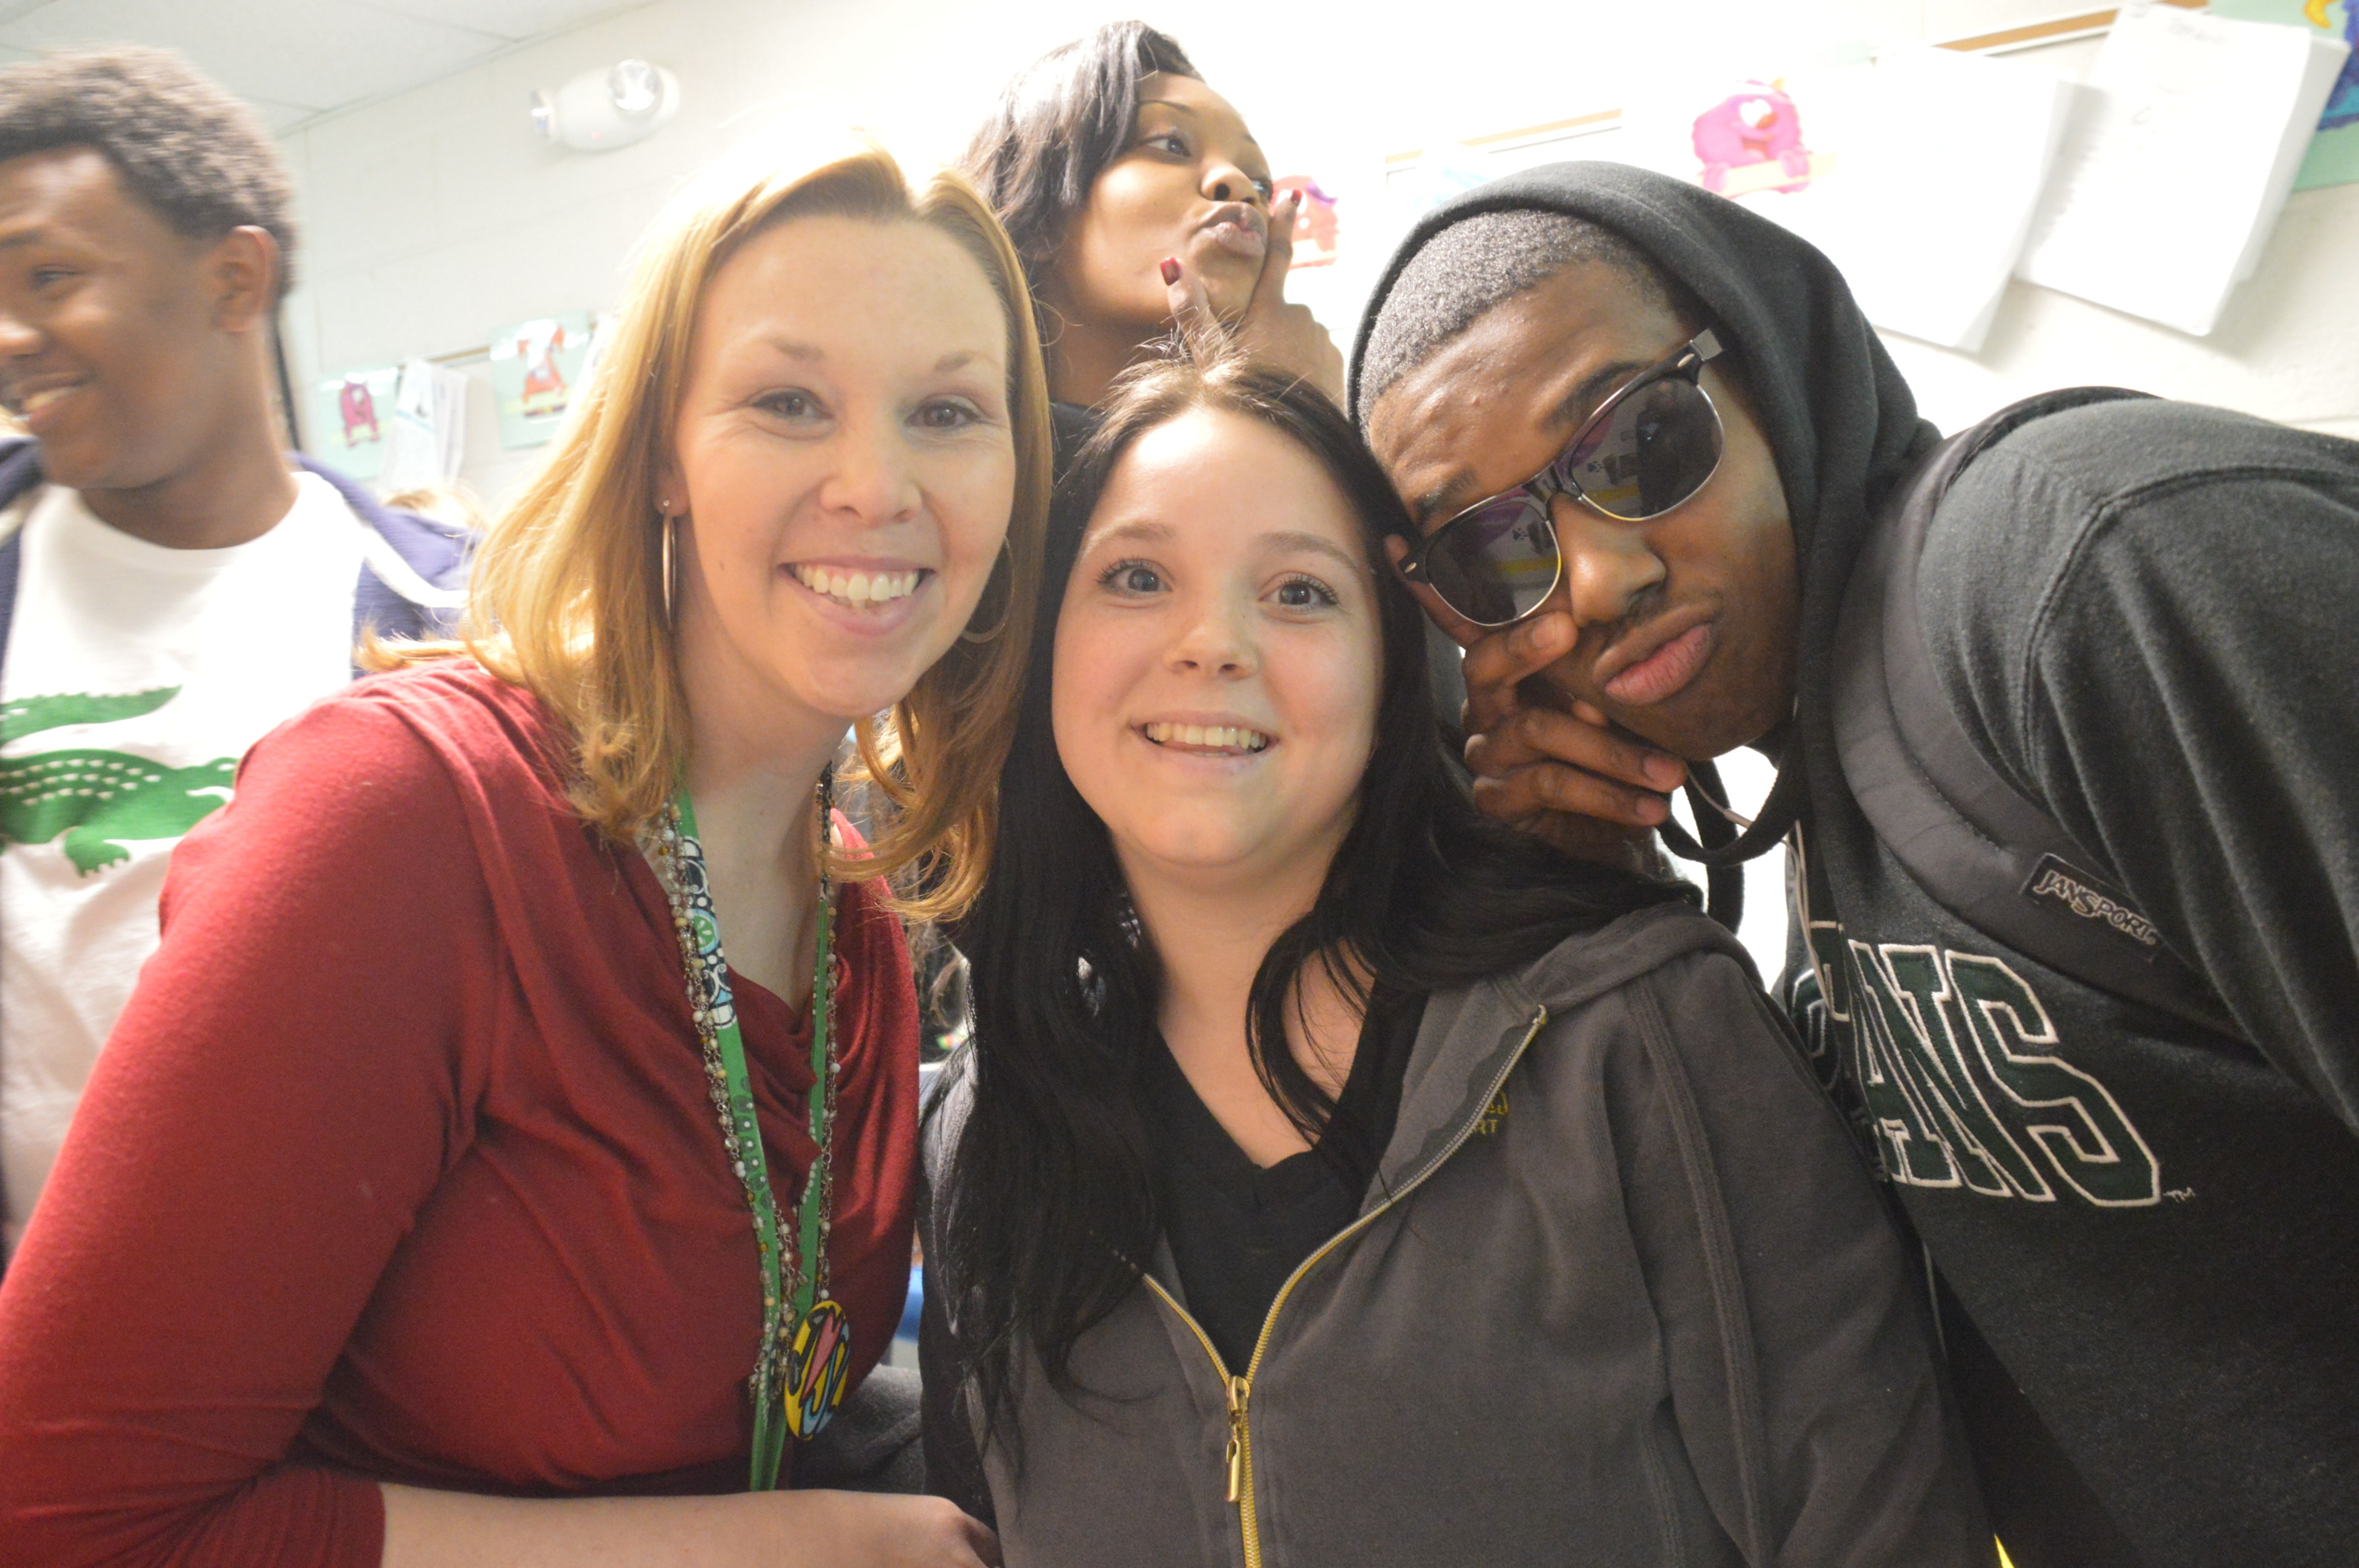 Mrs. Geiger, Kym Shaffer '15 and Michael Branch '16 pose for a photo at the elementary schools.